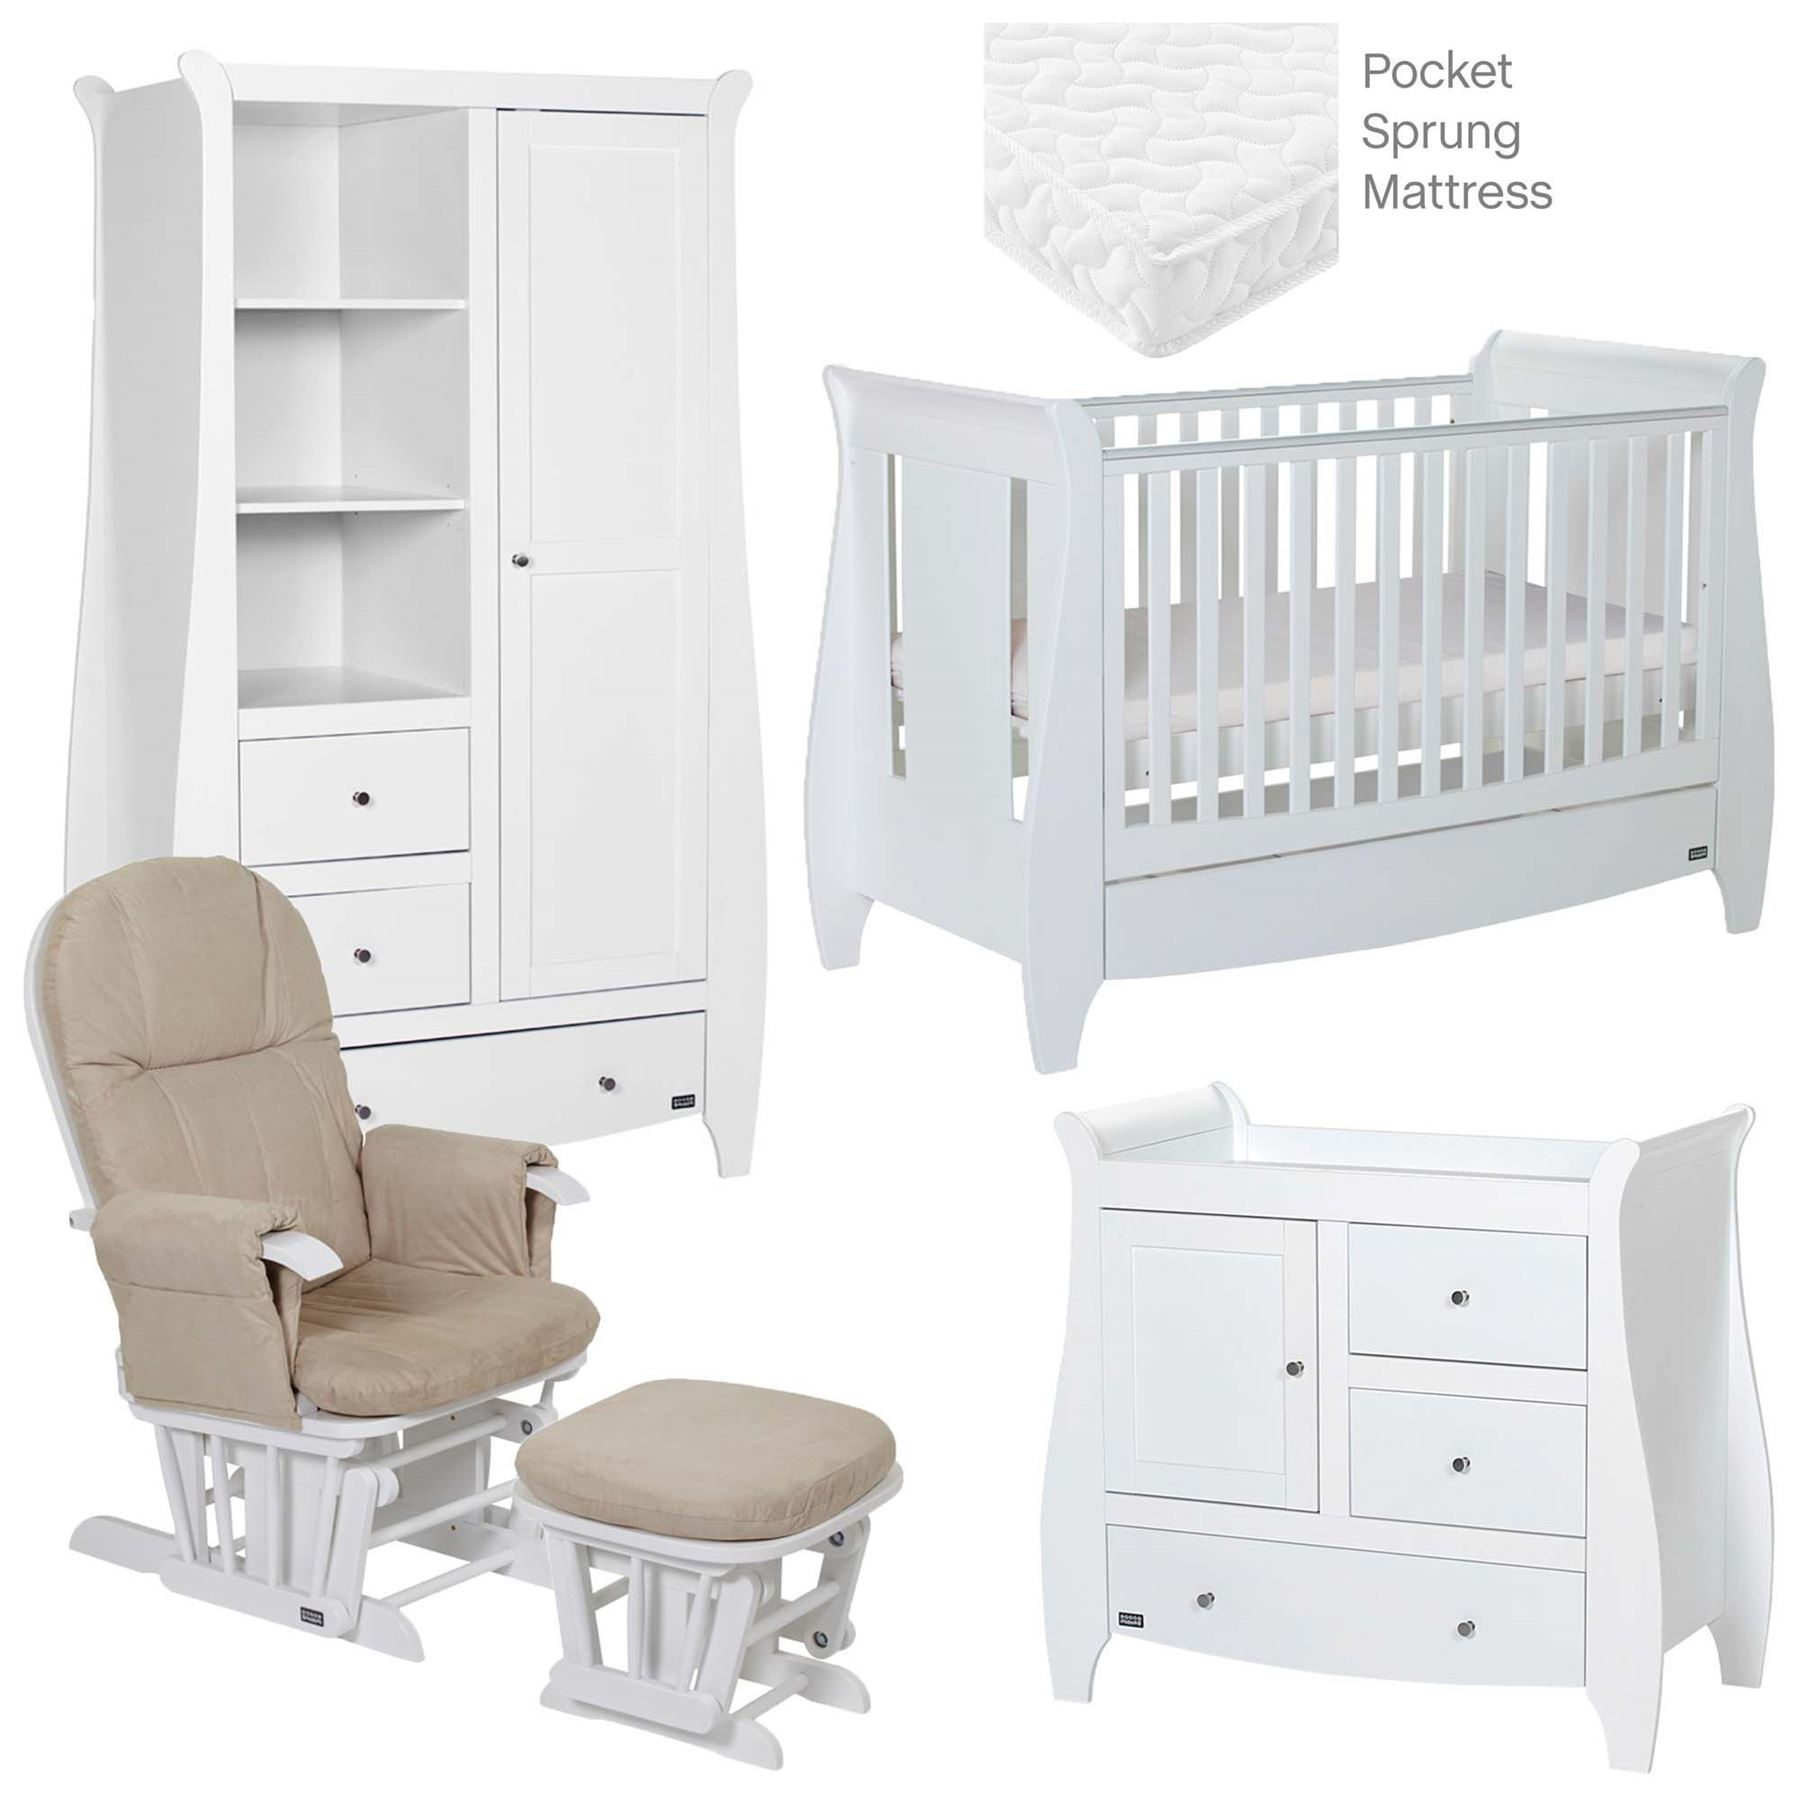 Details about Tutti Bambini LUCAS 5 PIECE ROOM SET WHITE Baby Nursery  Furniture BN